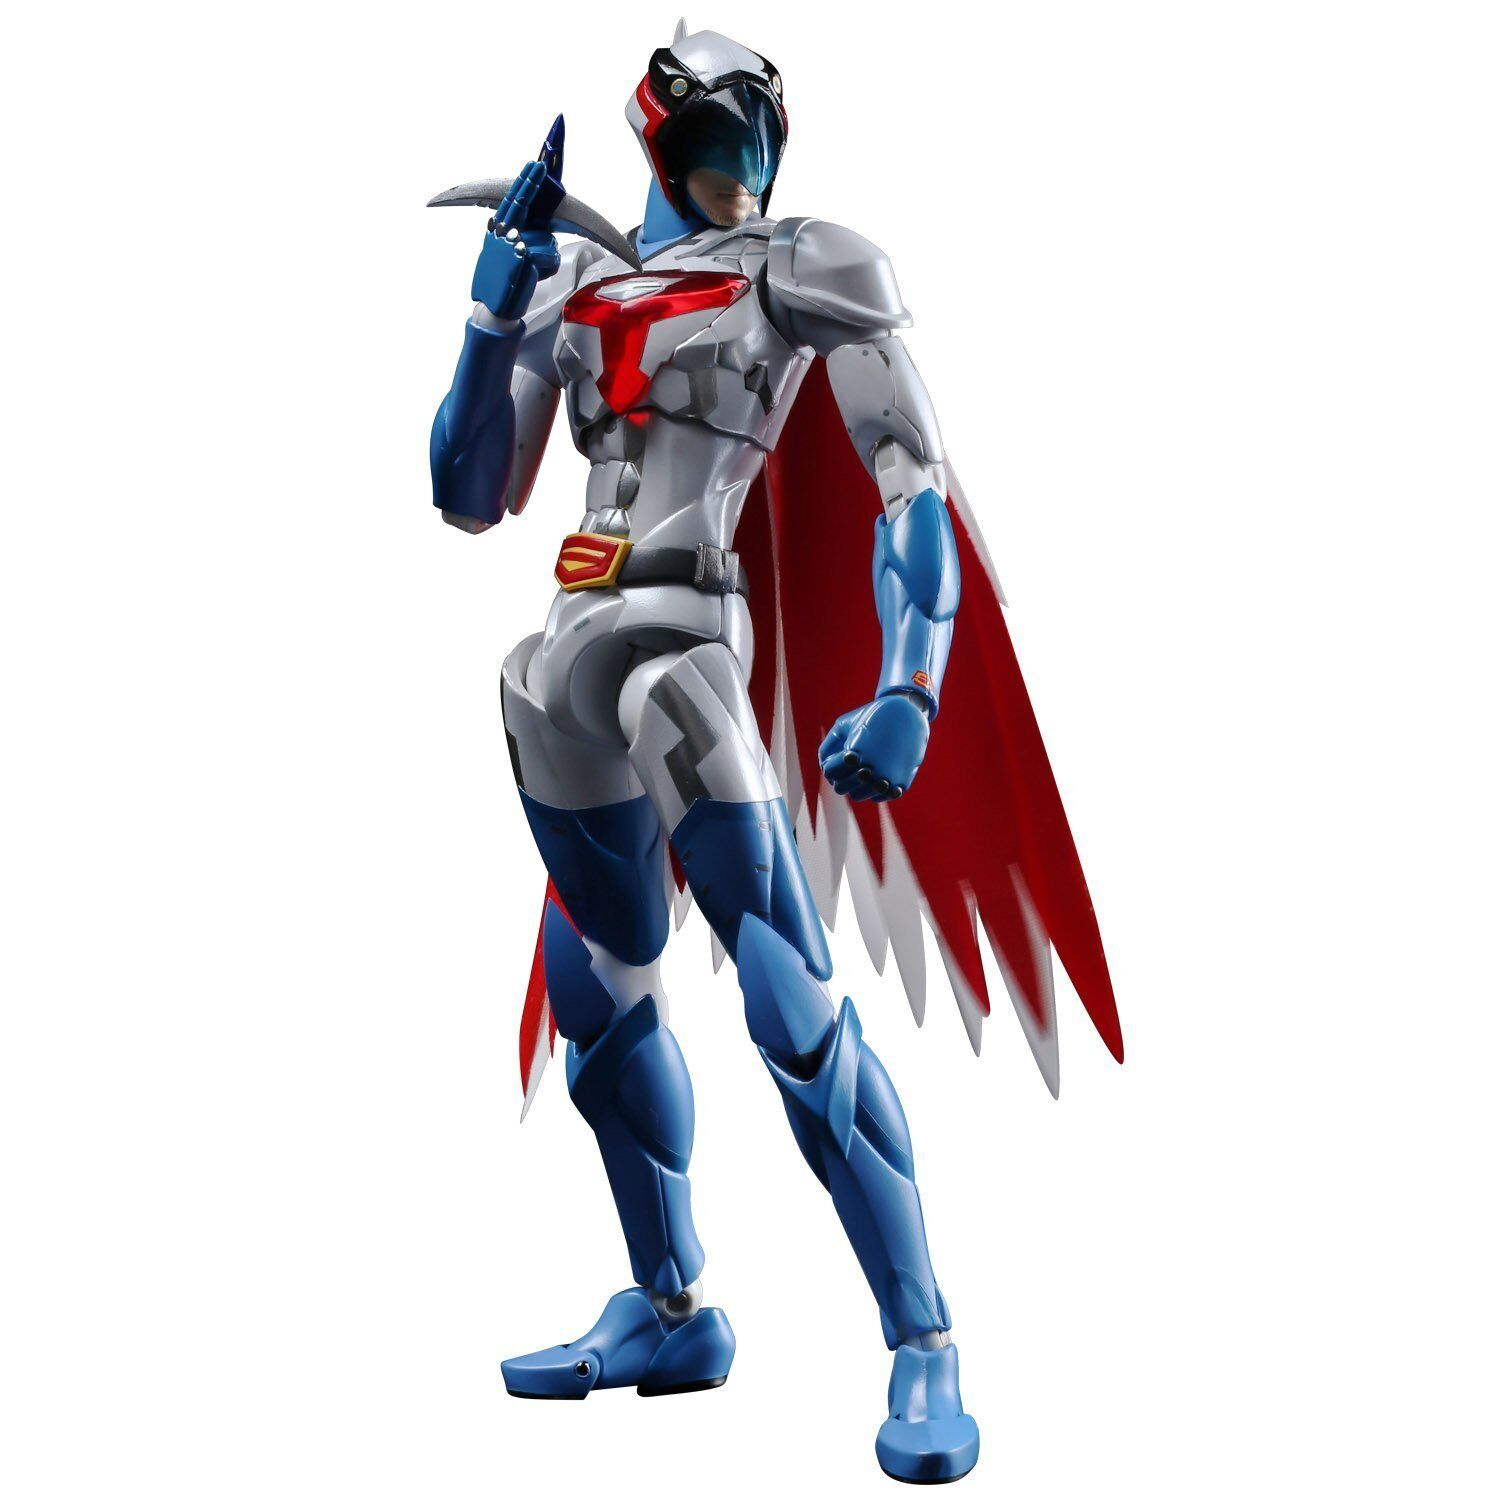 Sentinel Infini-T Force Gatchaman Fighter Gear Ver. Action Figure